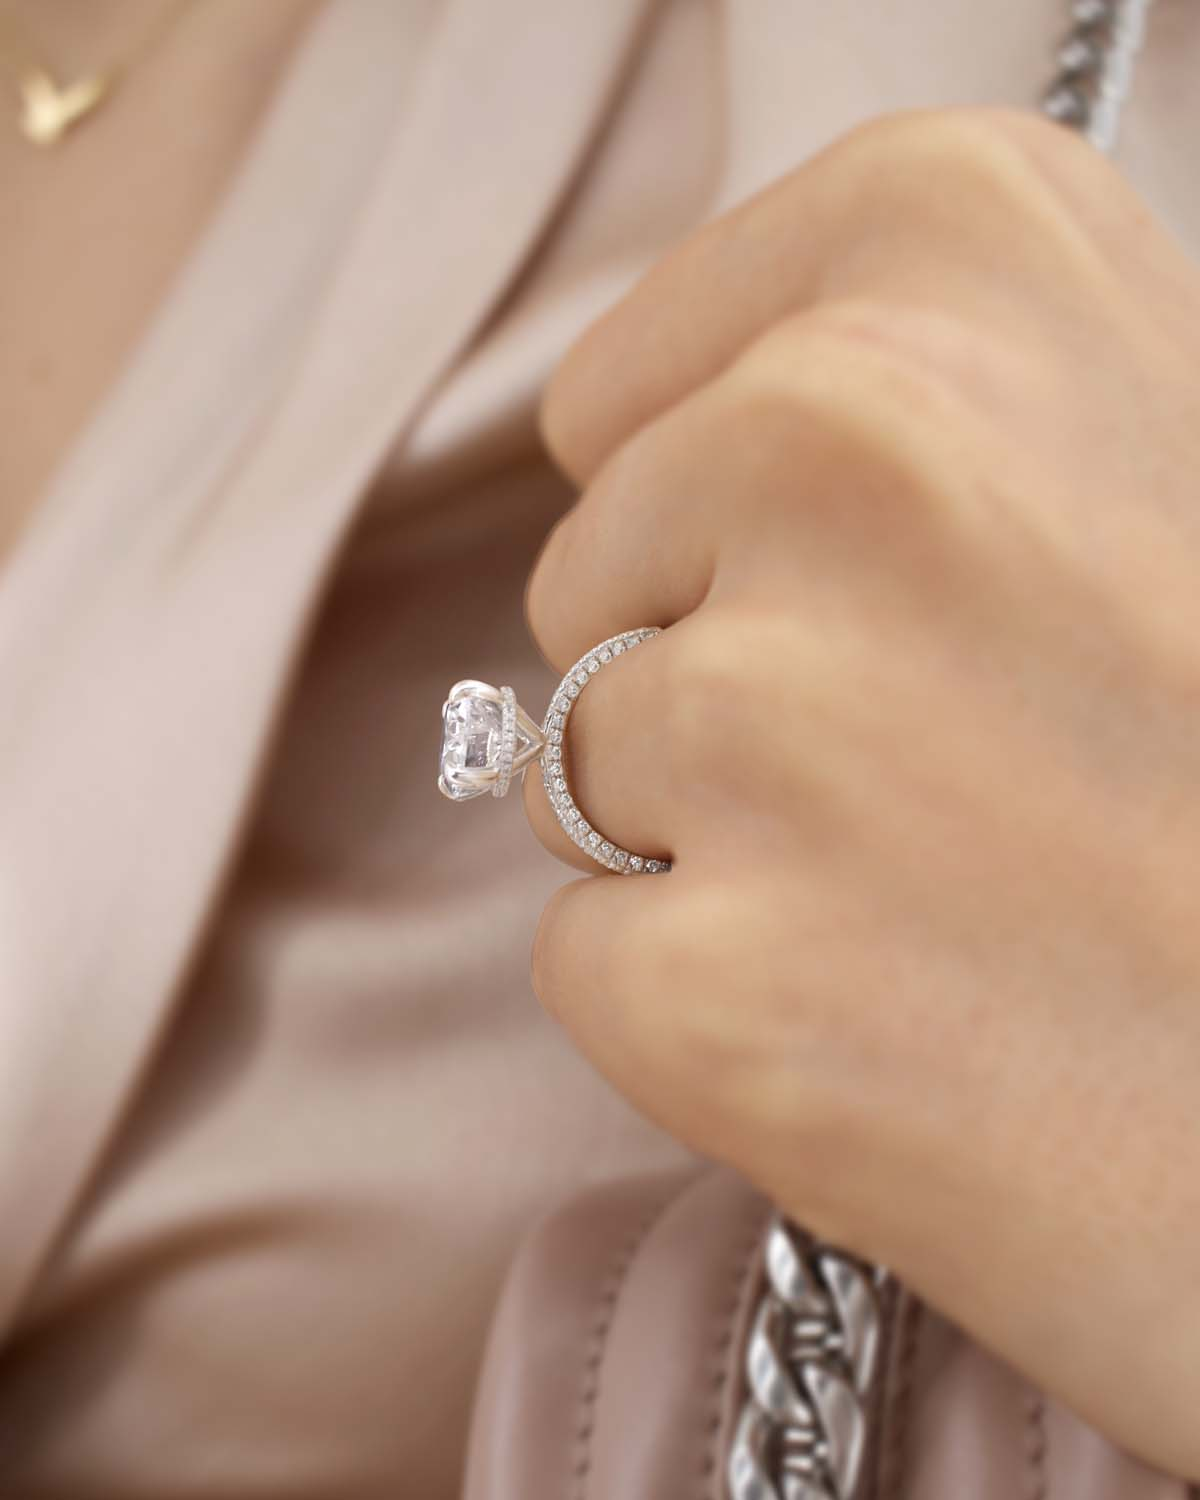 Lily Arkwright - Ethical and Environmentally Friendly Diamonds, an Amazing Alternative to Traditional Mined Diamonds